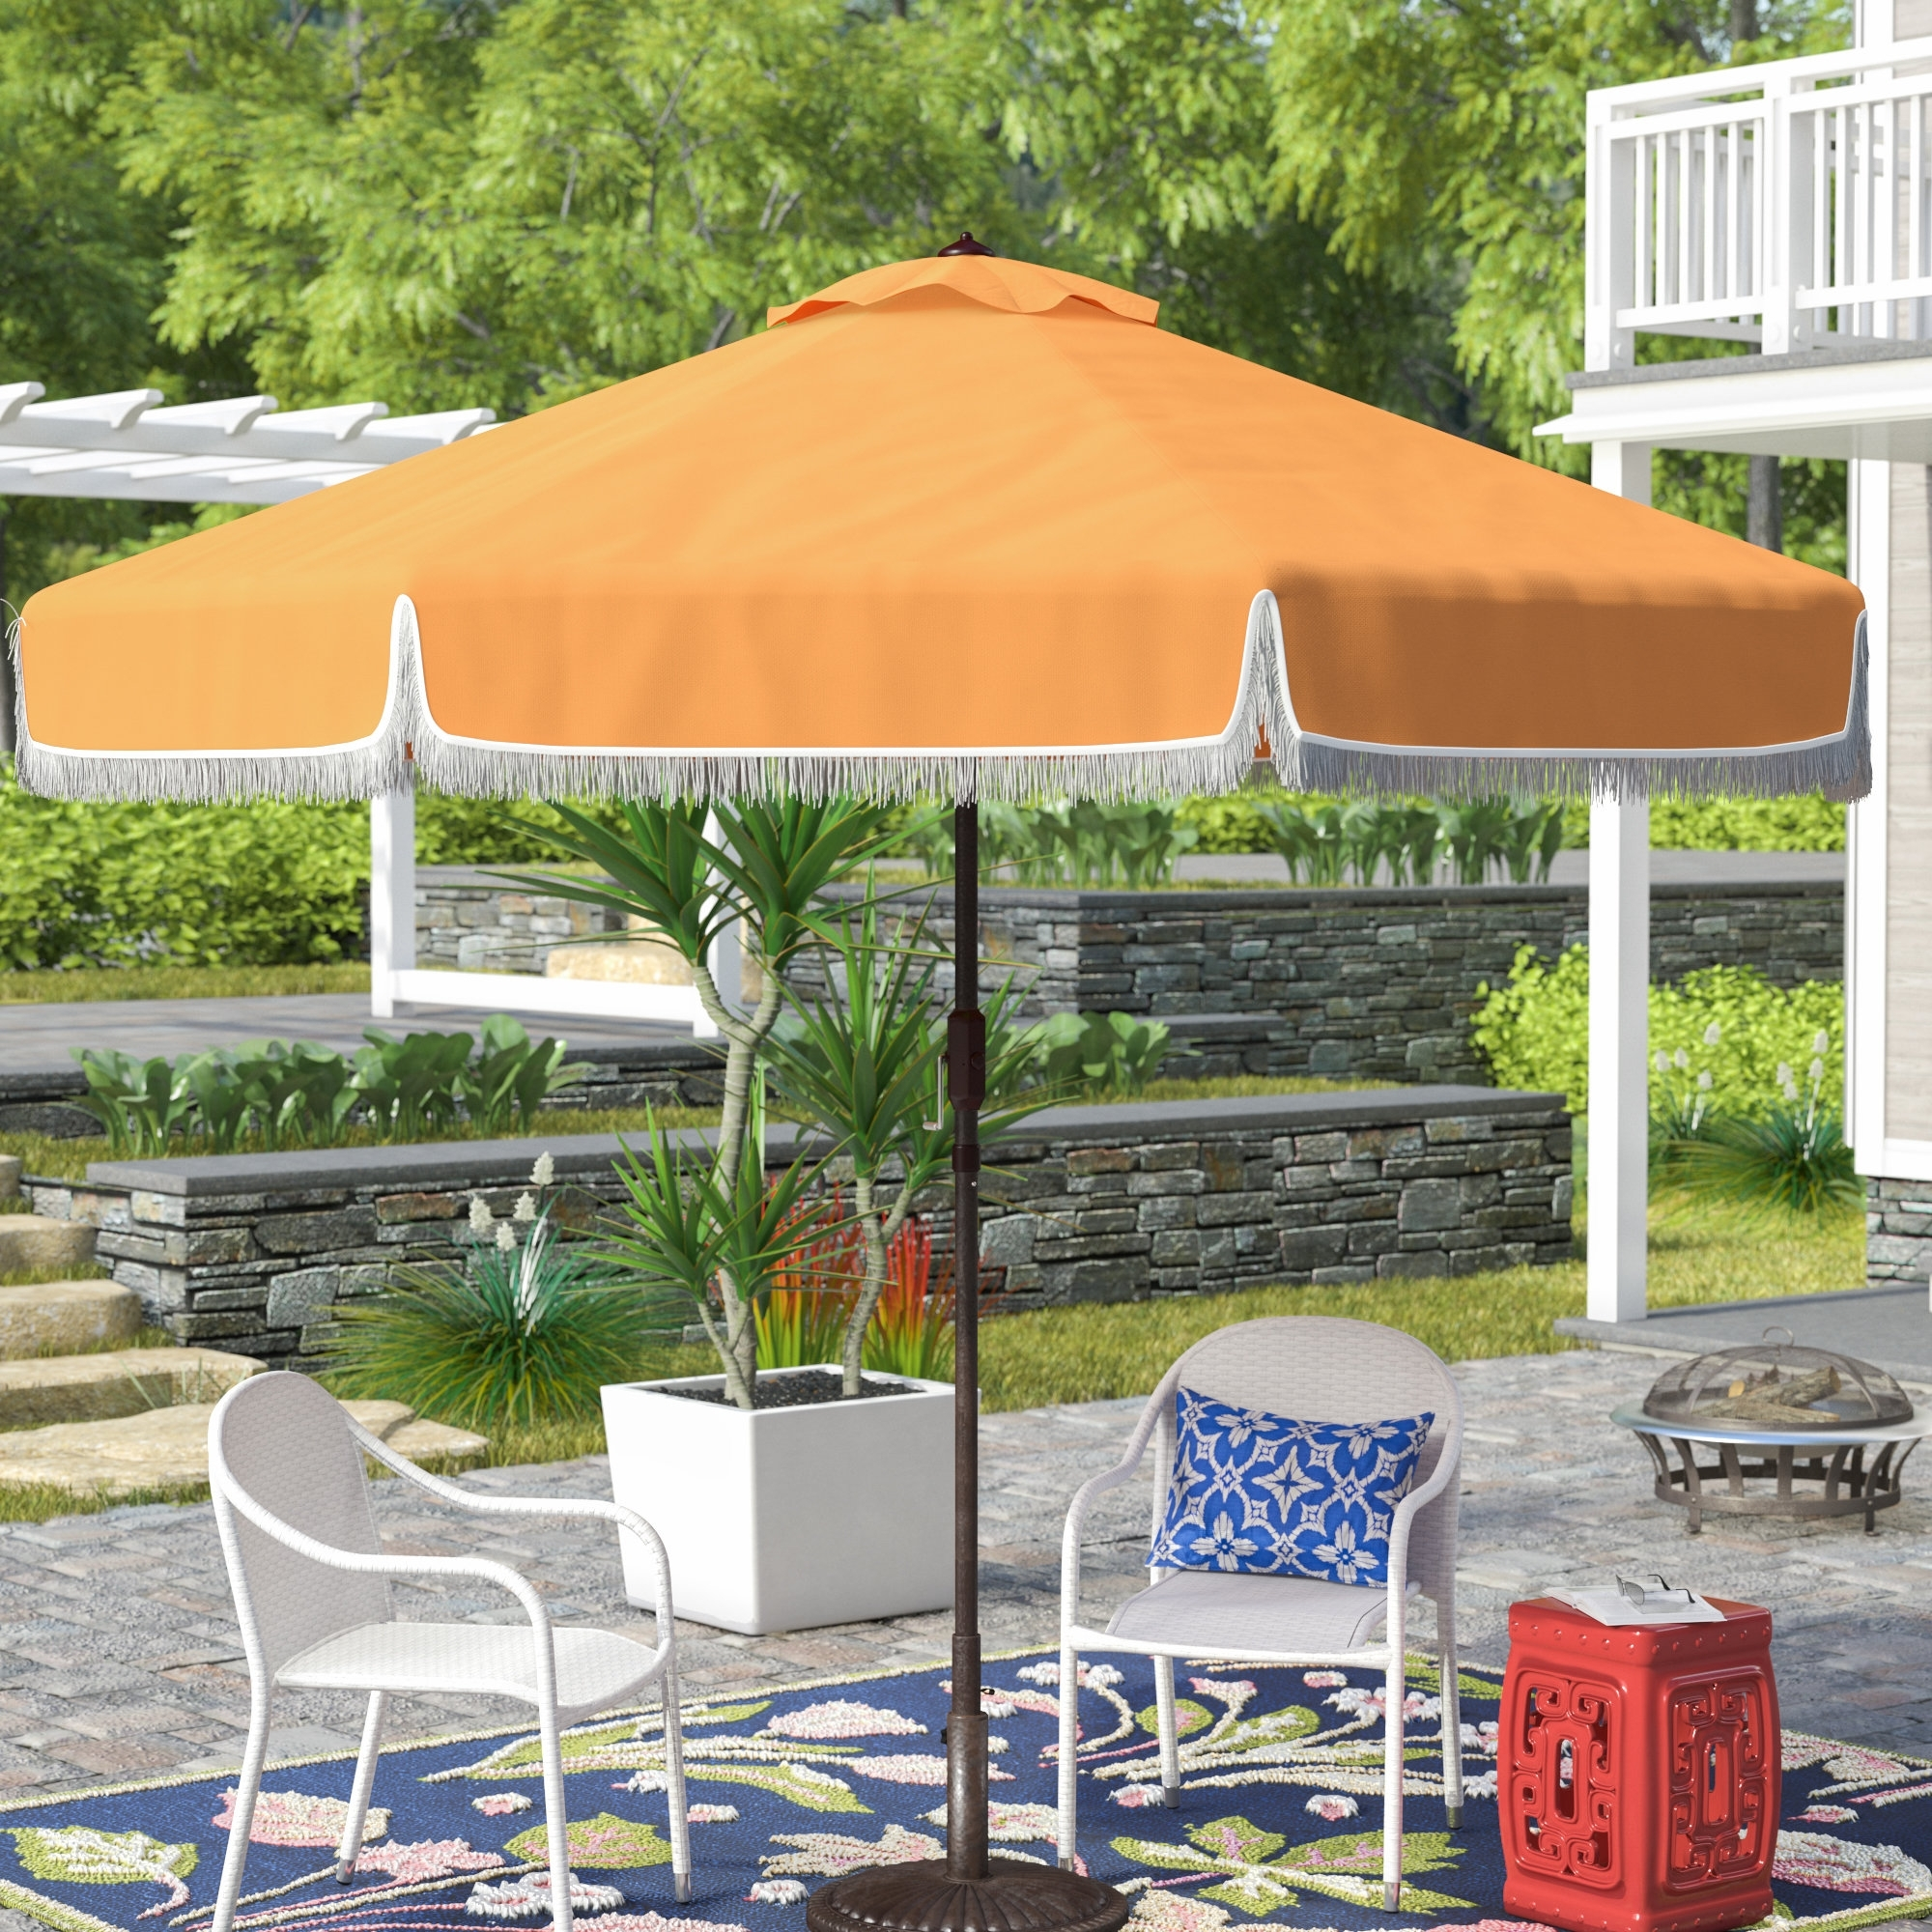 Wayfair Regarding Vinyl Patio Umbrellas With Fringe (View 19 of 20)